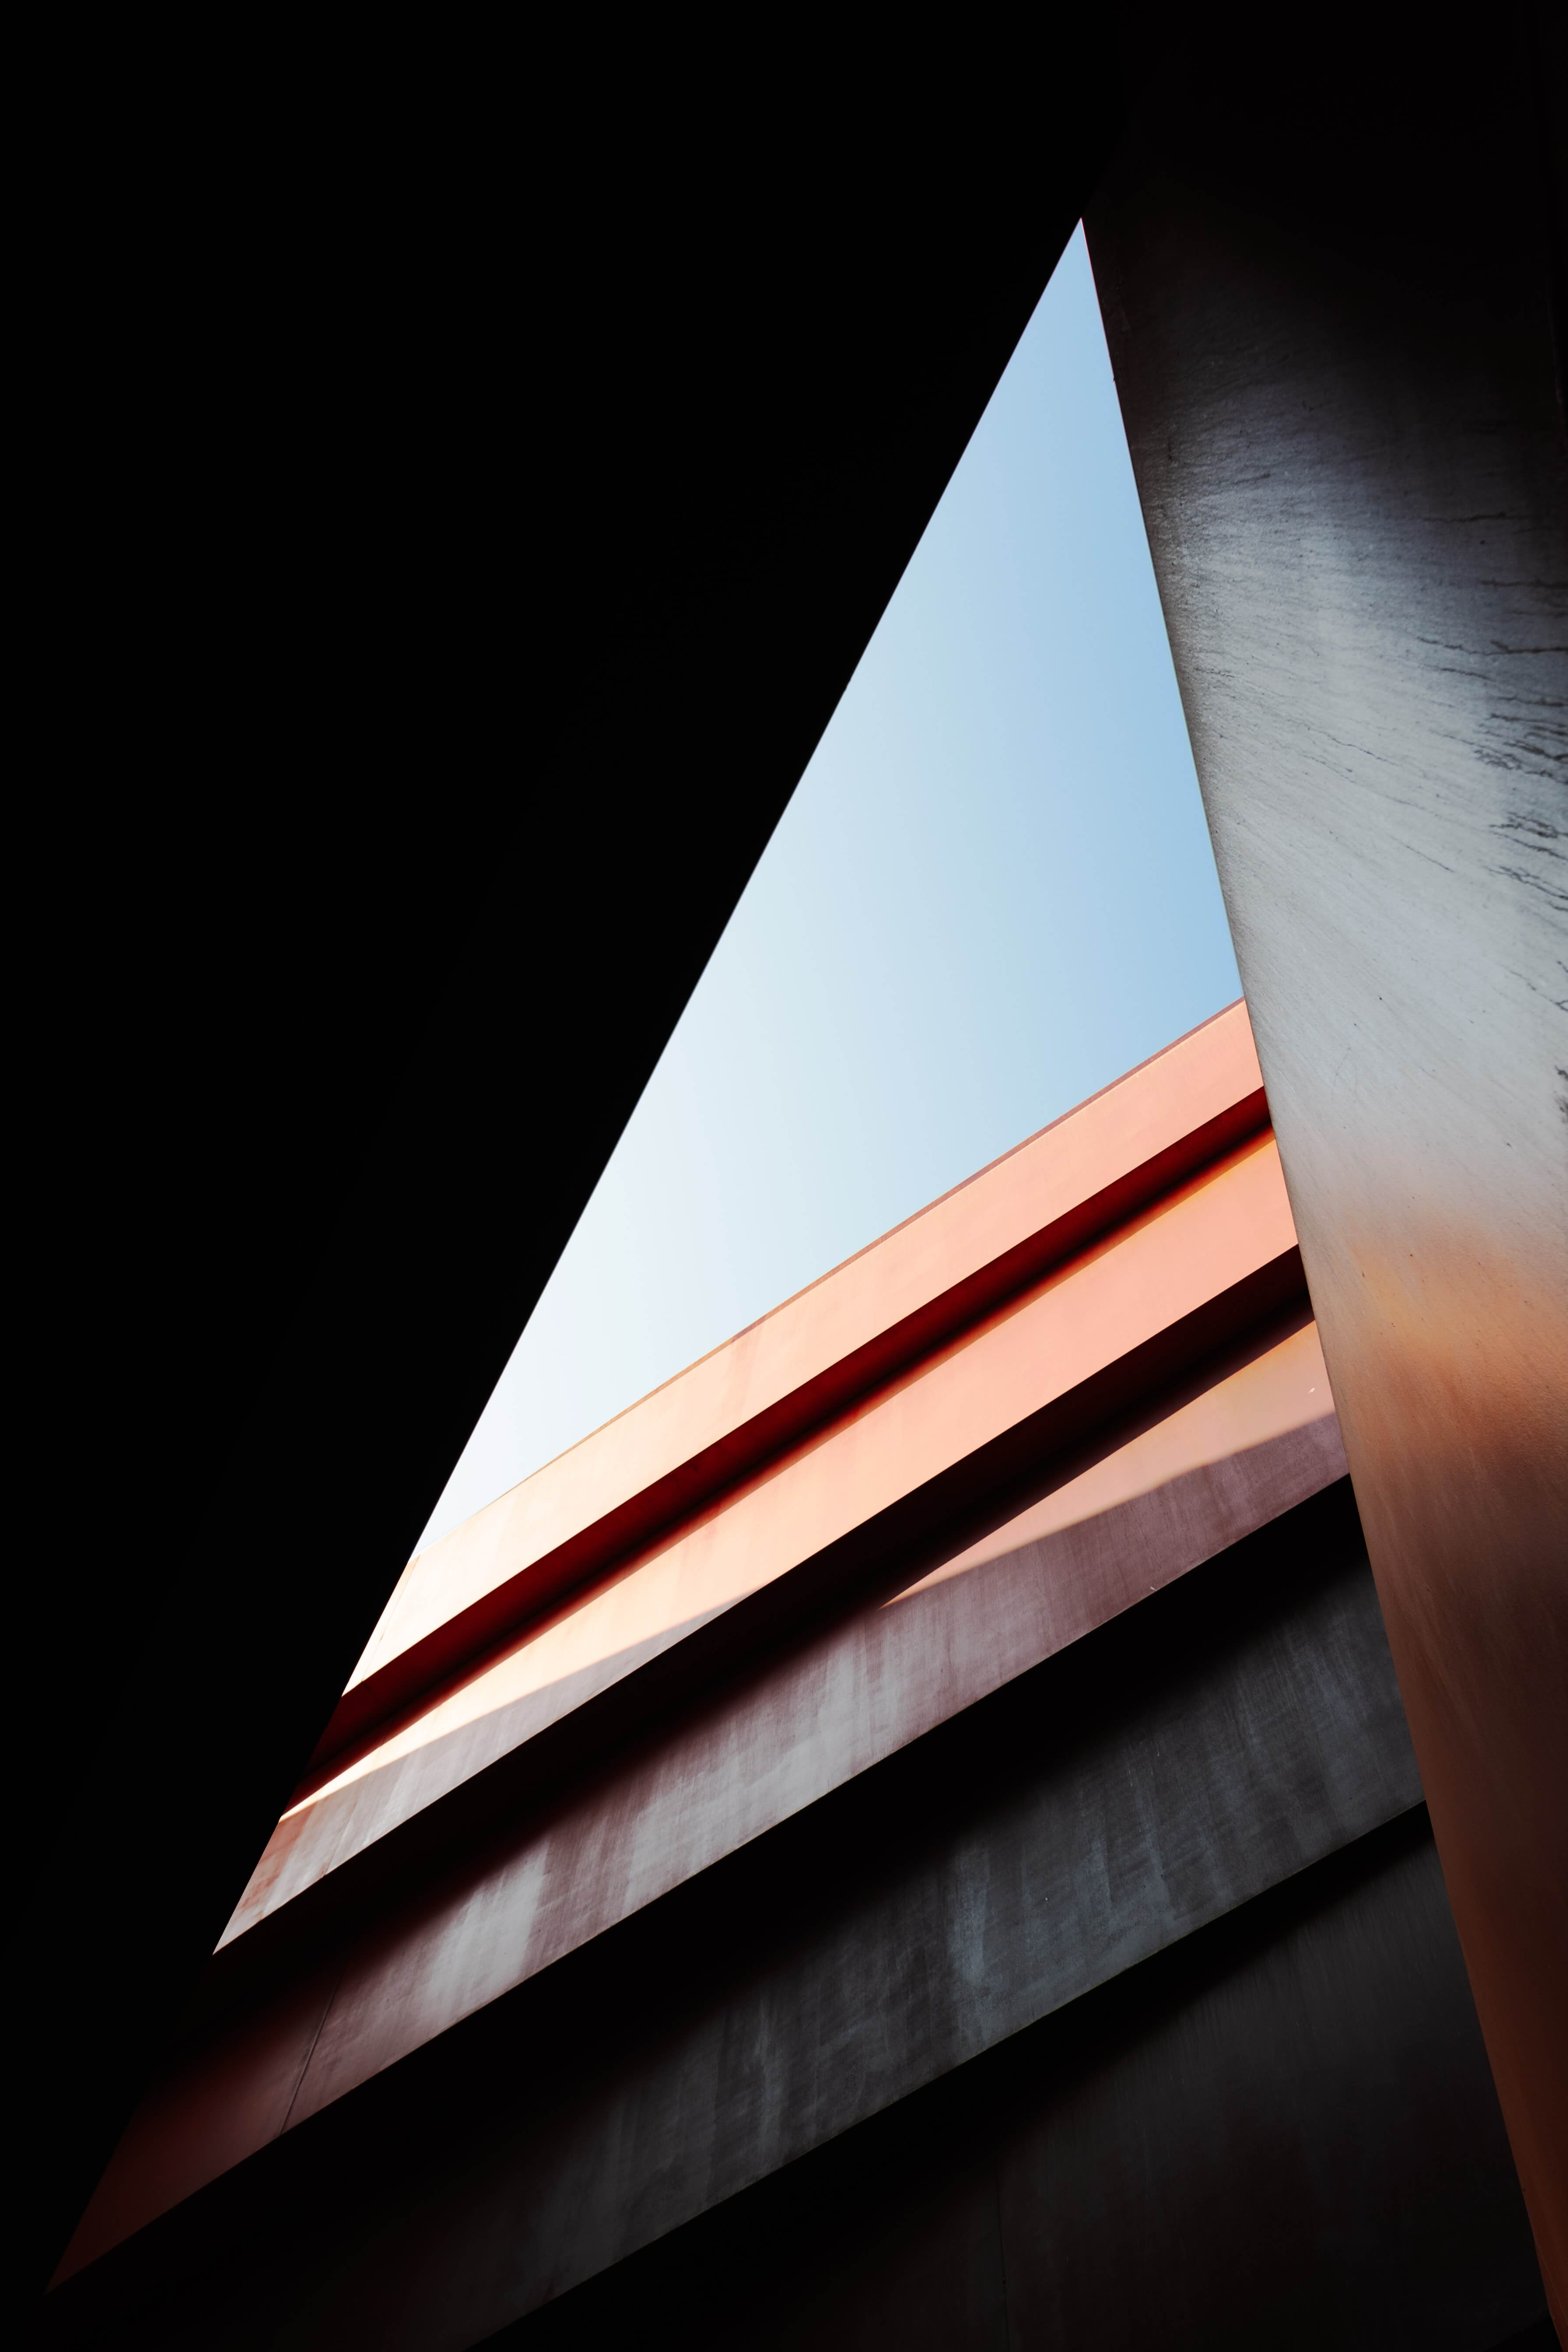 web-design-agency-blog-architecture-photography-space66